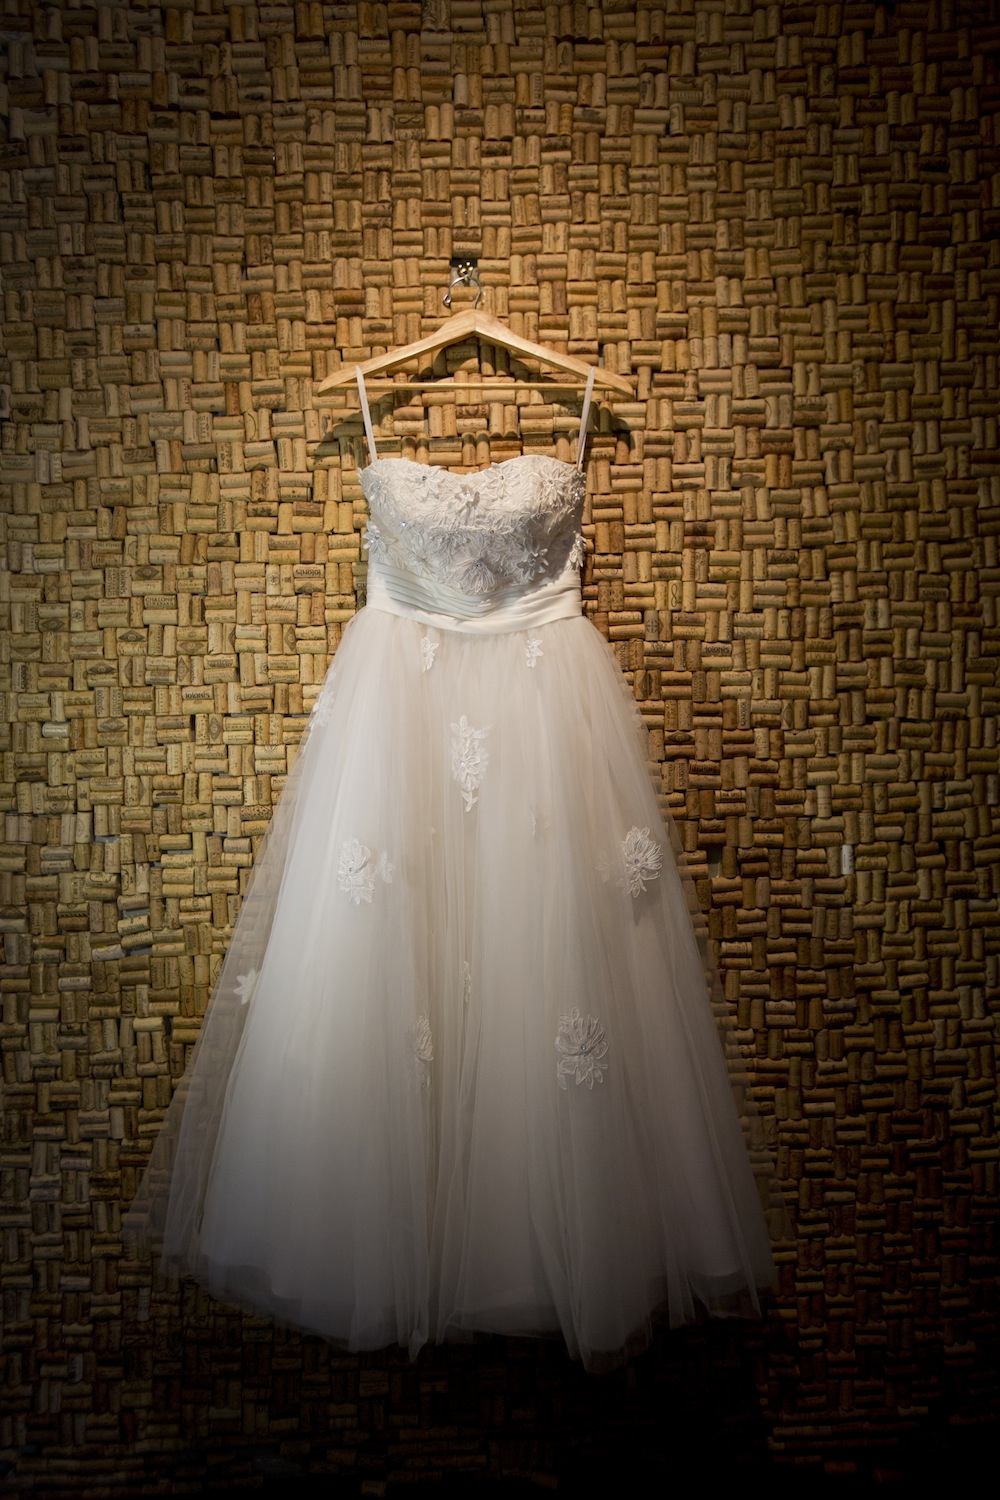 Gorgeous Retro Style Wedding Dress from The Dress Matters / photo by Krista Patton Photography